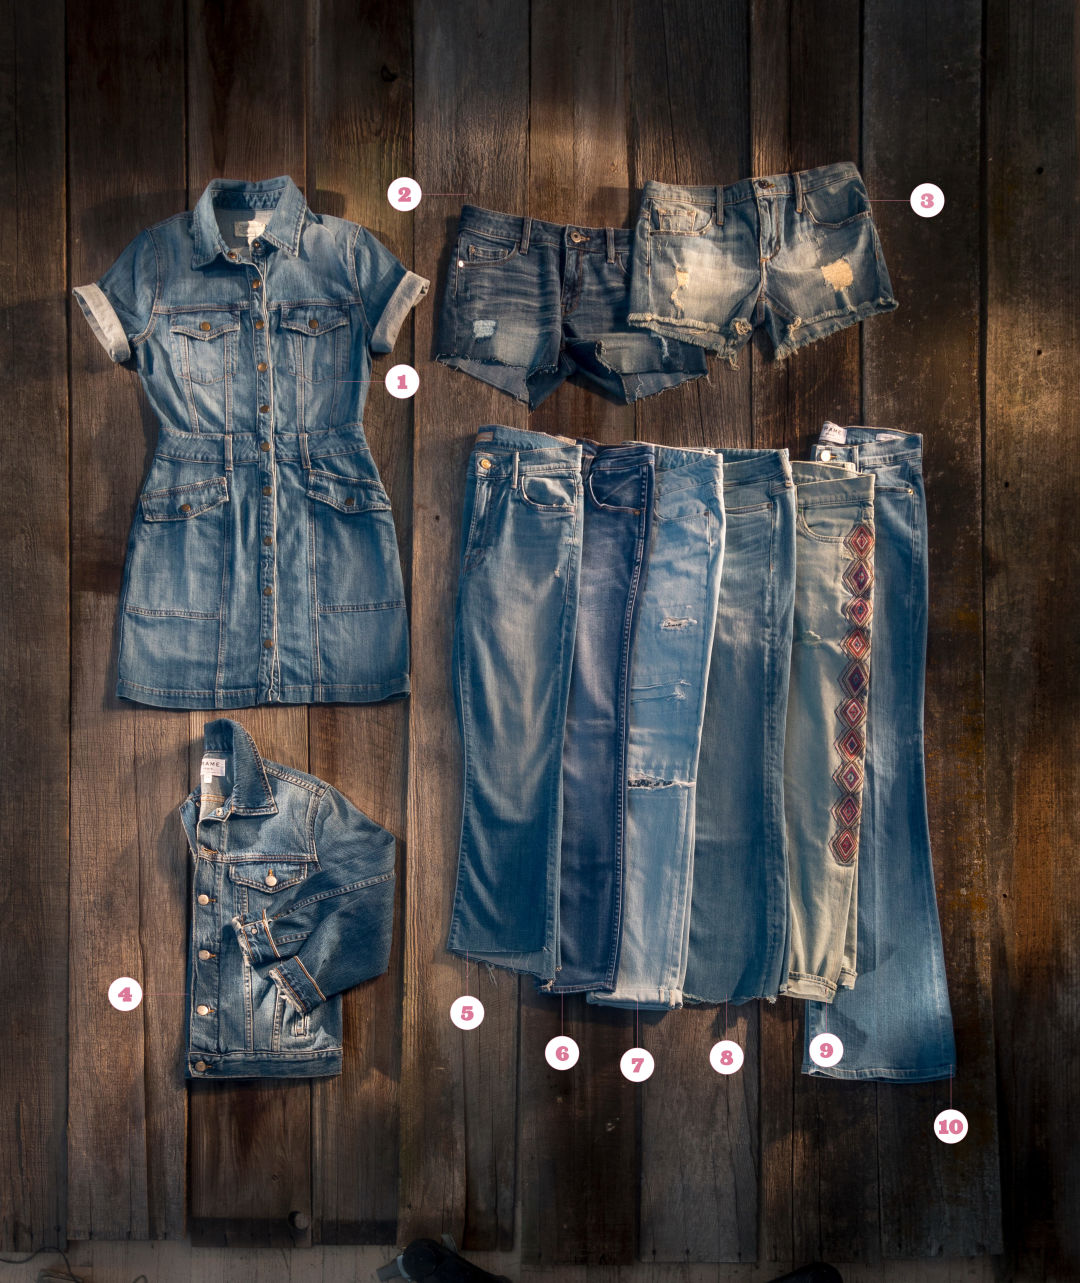 Pcsu 16 shopping denim snhnow